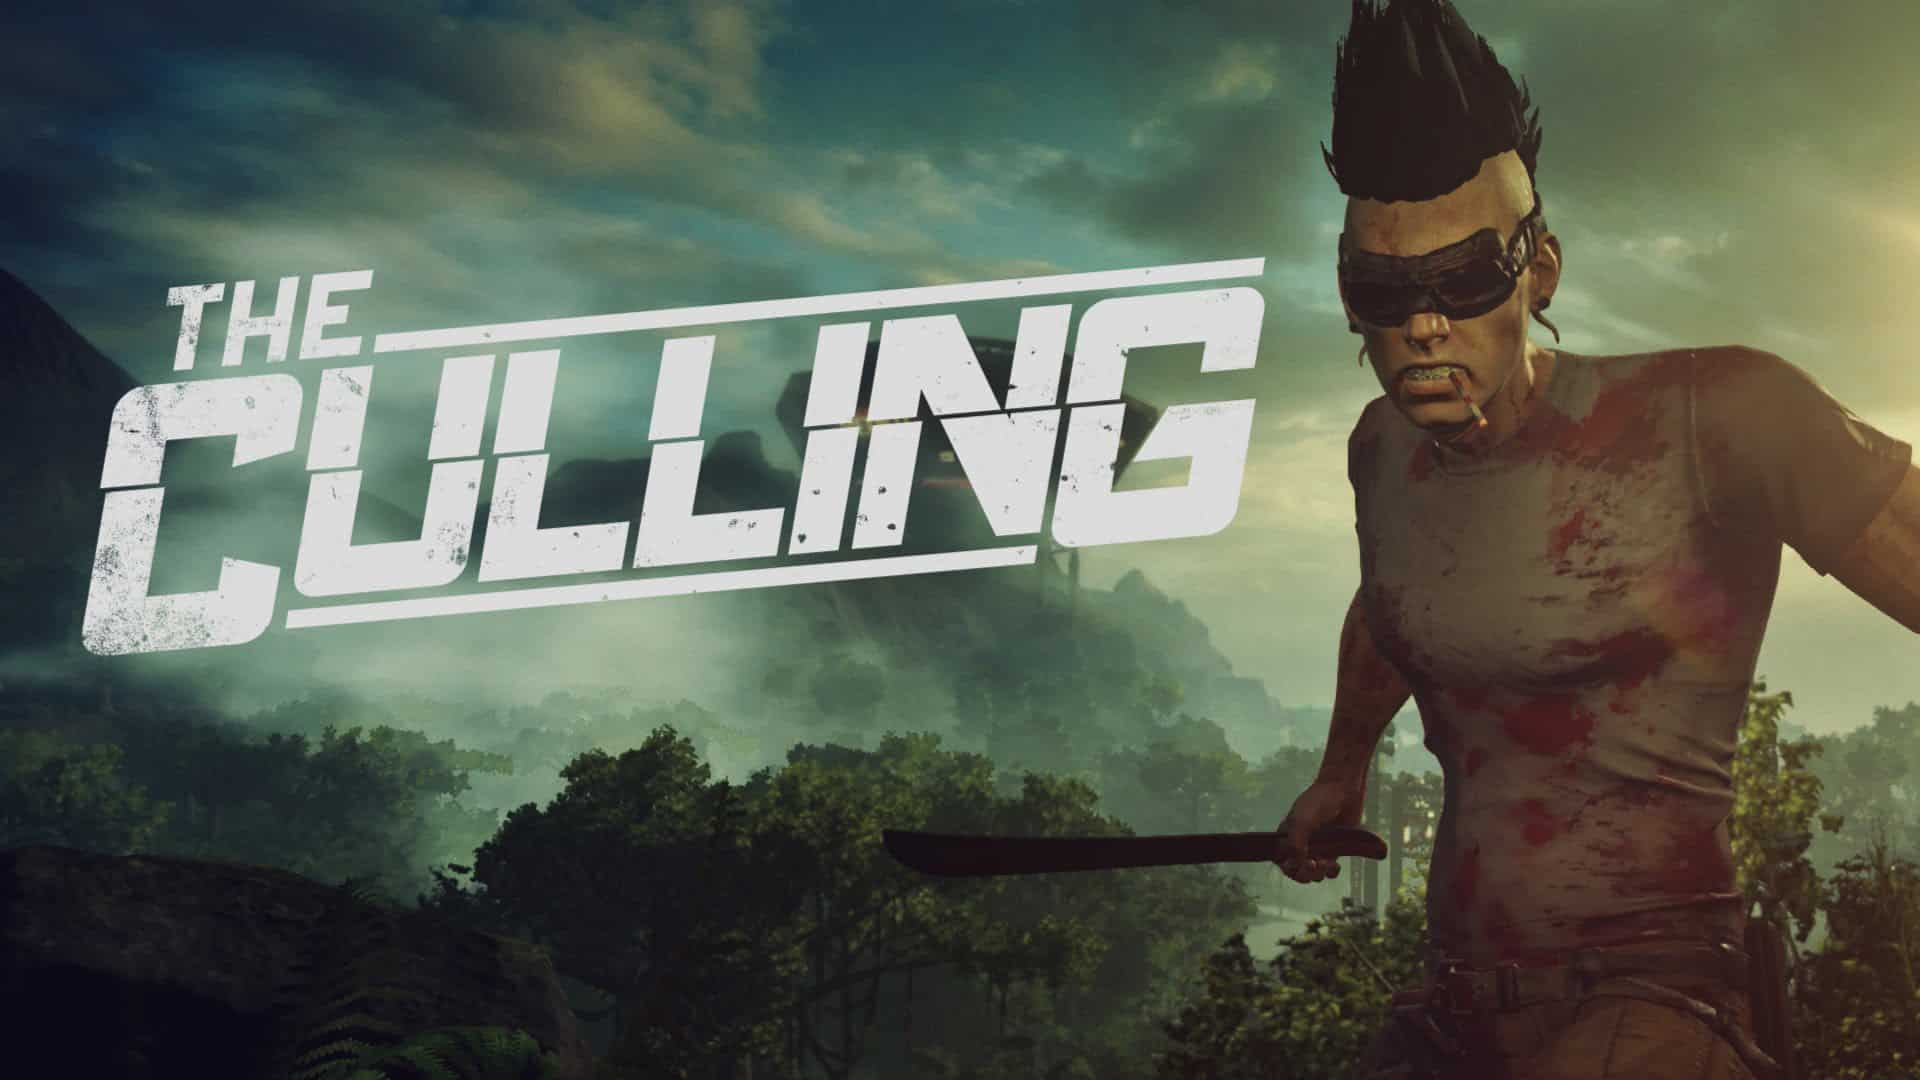 The Culling has been culled, no future updates planned